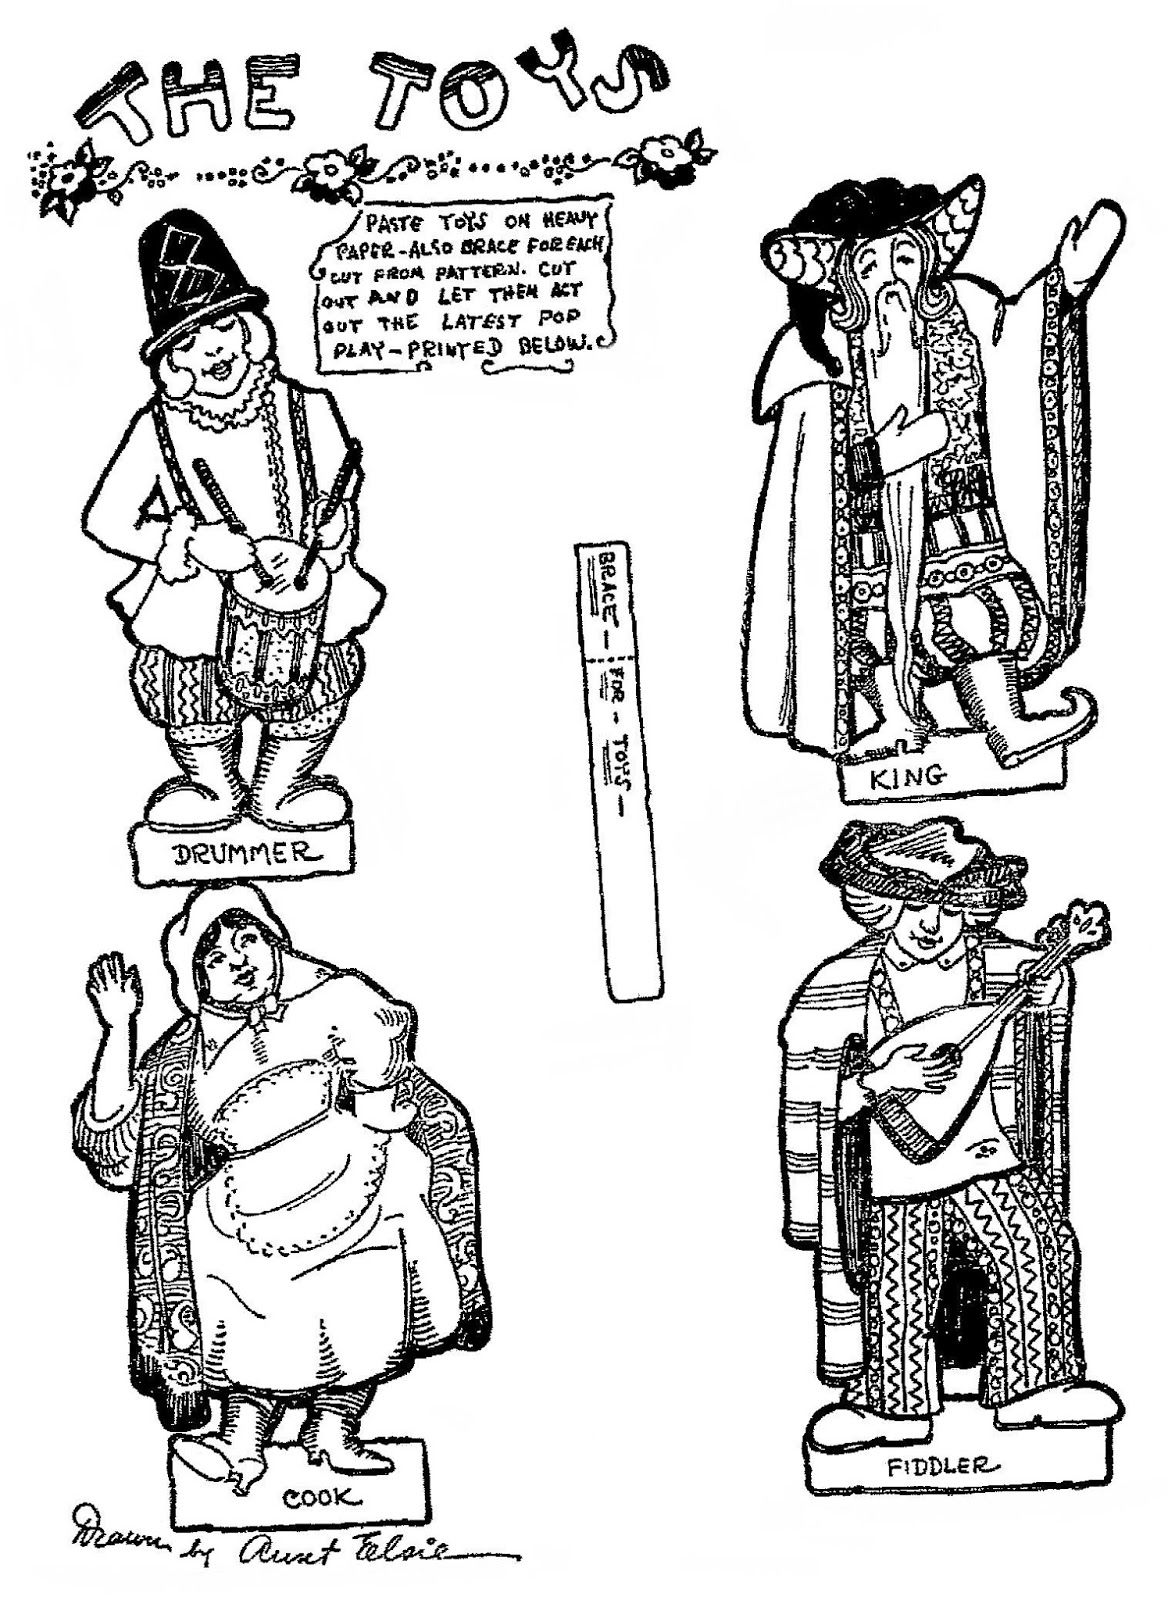 """January 11, 1926.   The figures of the King, the Drummer, the Fiddler and the Cook from THE TOYS and """"Aunt Elsie's"""" POP BOOK.  POP stands for """"Purveyors of Pleasantness"""".  2 of 2"""